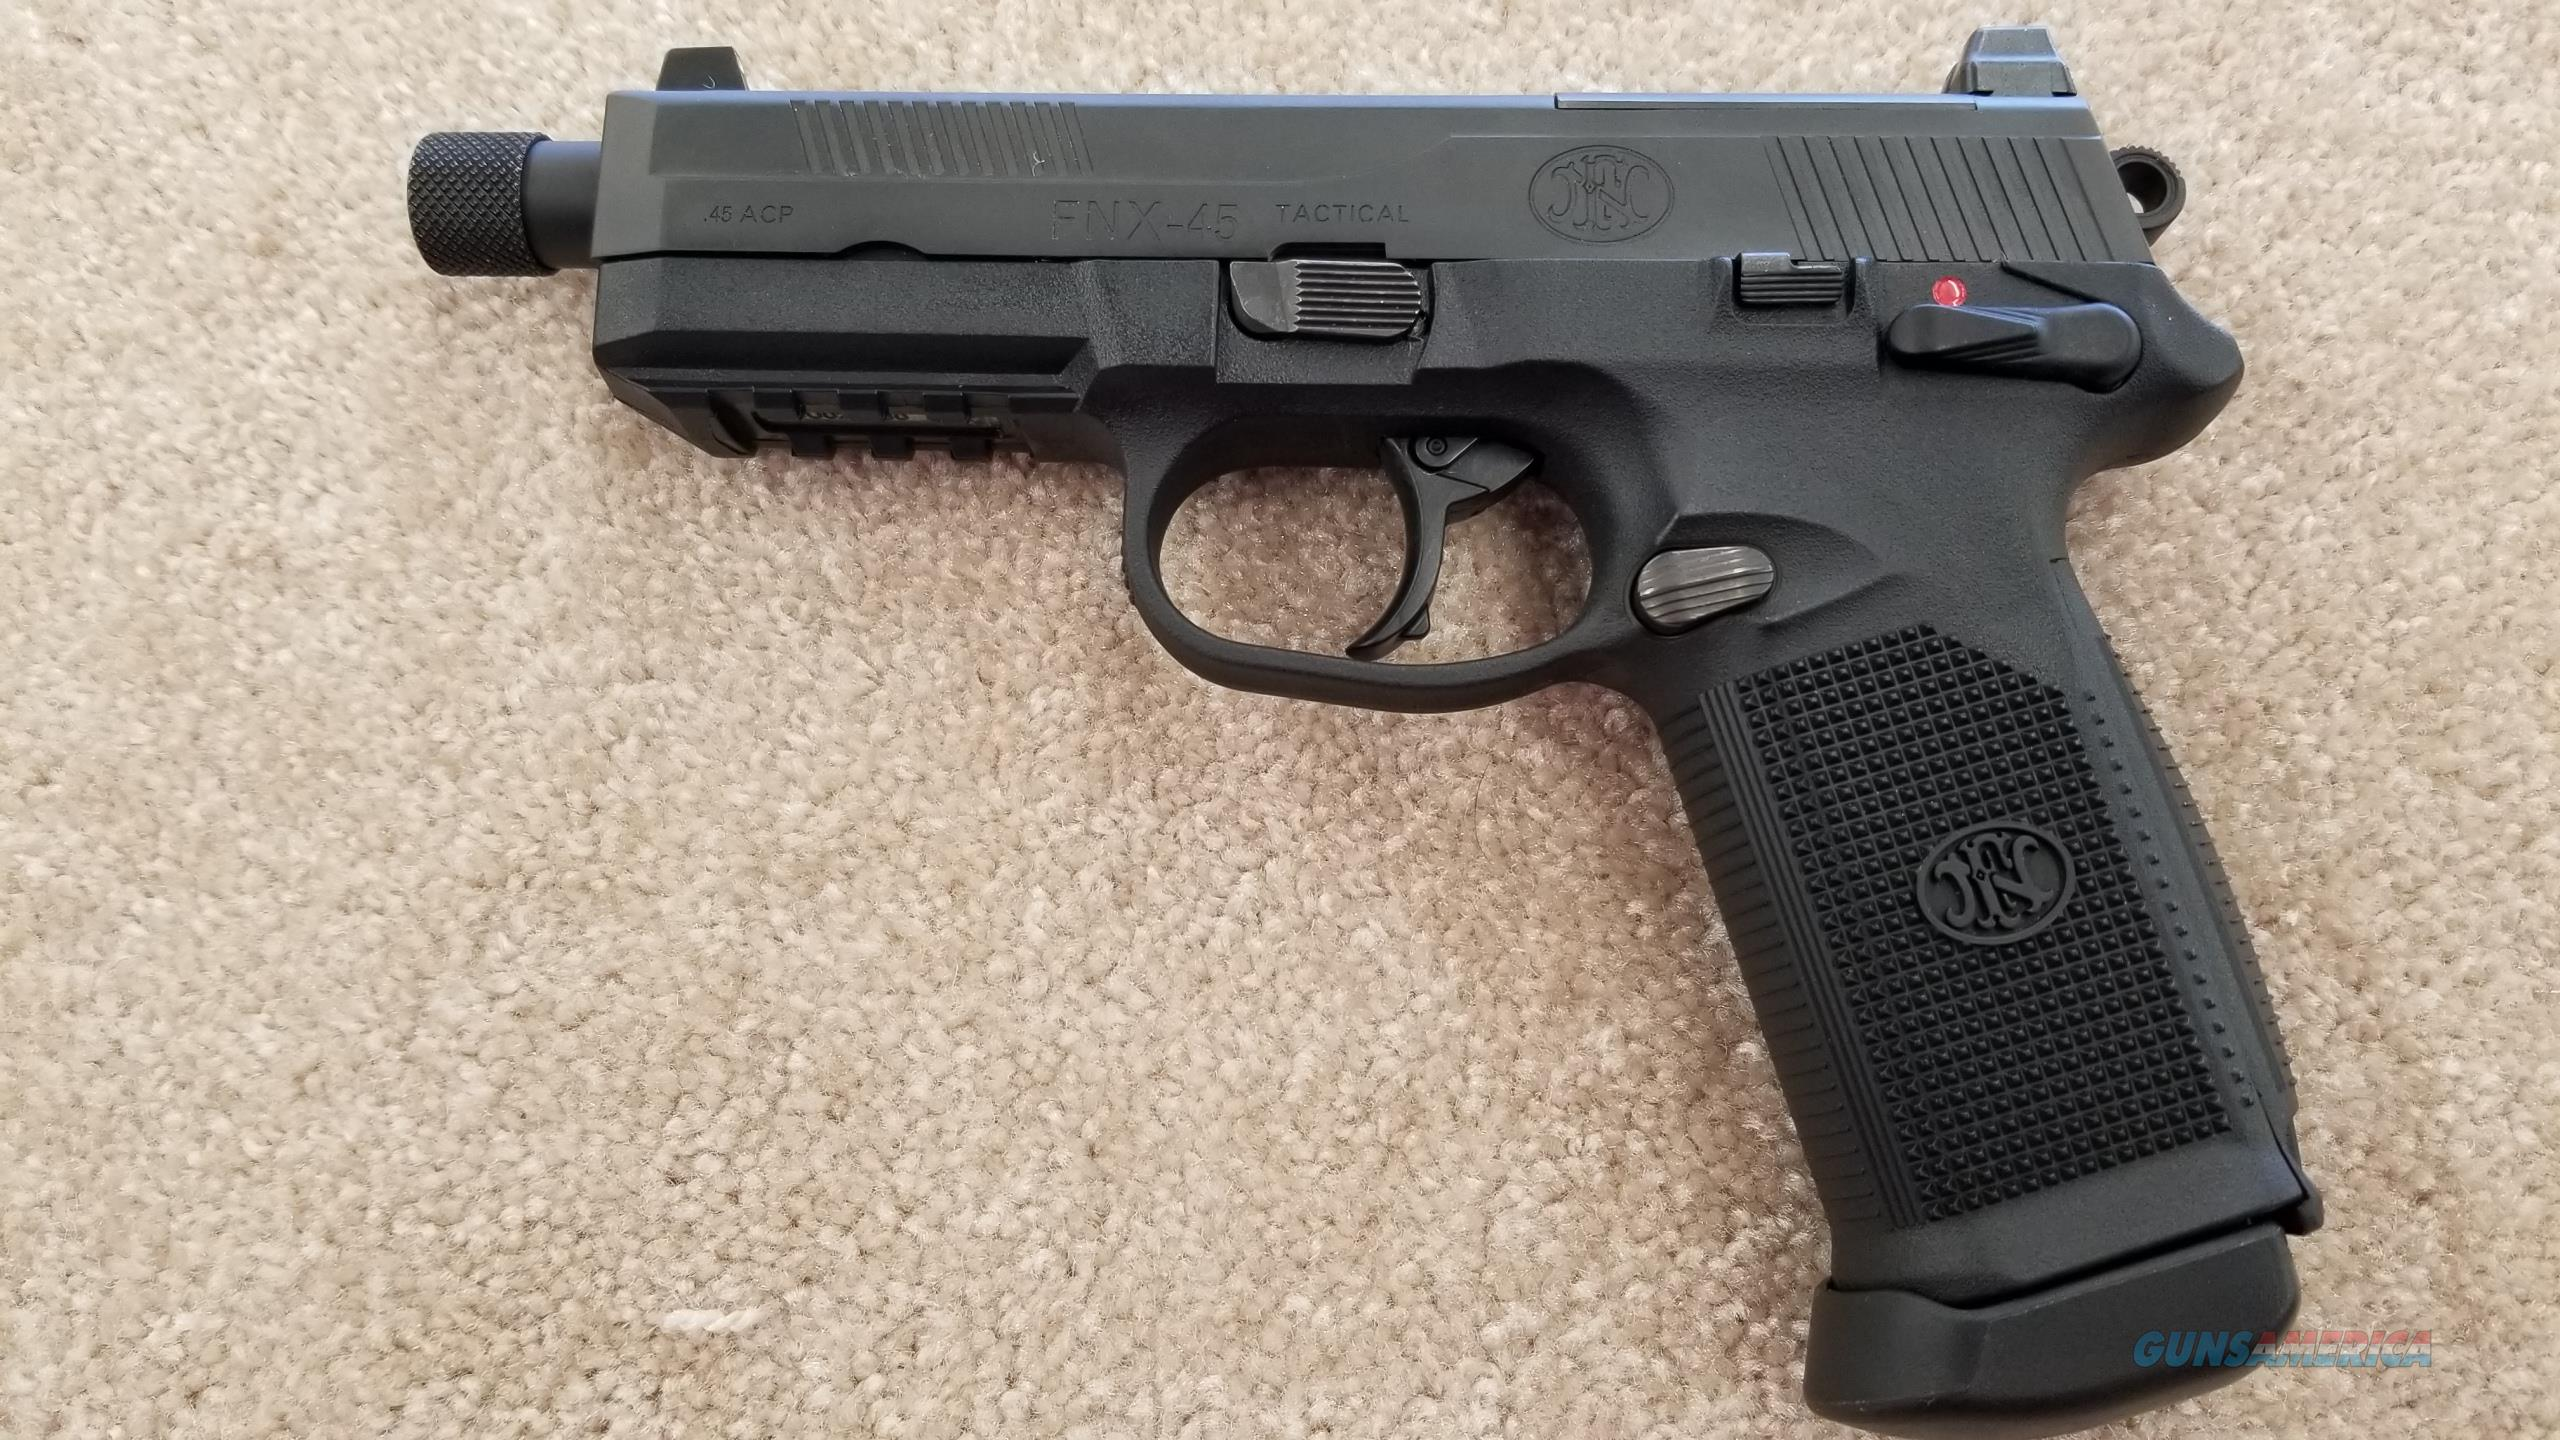 Pre Owned FNH FNX 45ACP w/ (3) 15 Round Mags Suppressor Ready  Guns > Pistols > FNH - Fabrique Nationale (FN) Pistols > FNX